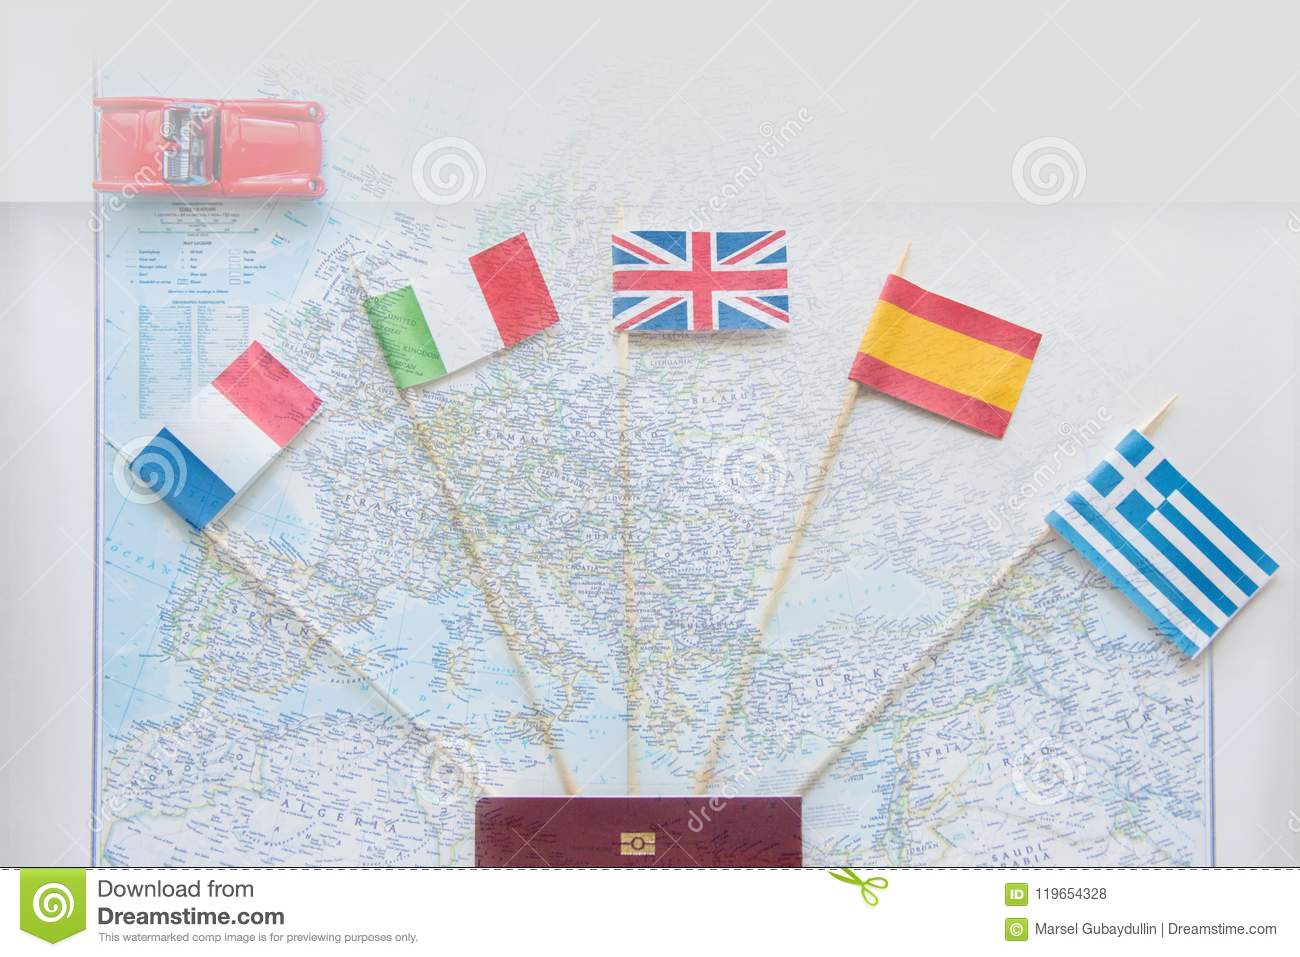 Colored Flags On The Map Of Europe: France, Italy, England UK, Spain ...